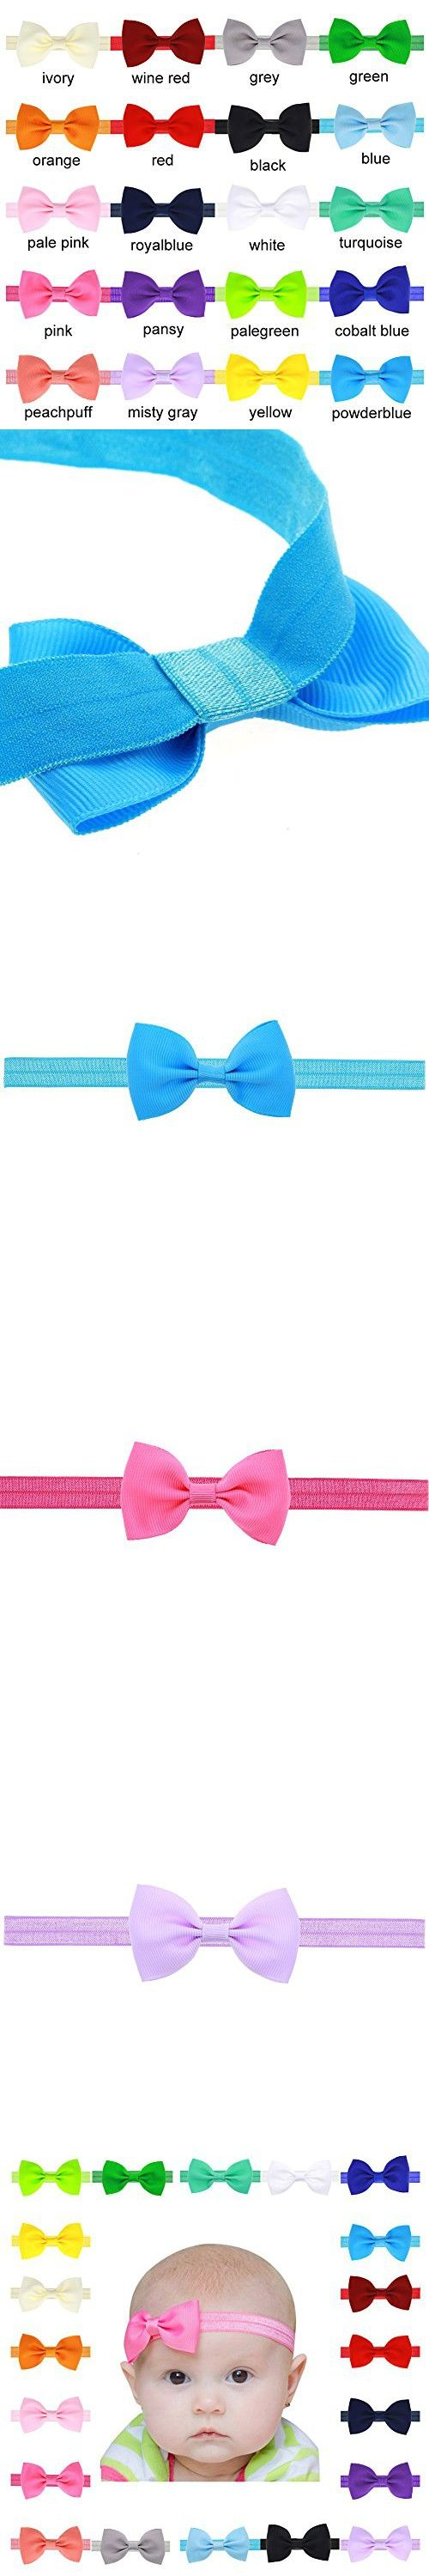 Enjoymart 20Pack Supper Lovely Baby Hair Bands Different Colors Bow Headband Wrap (Pack of 20)